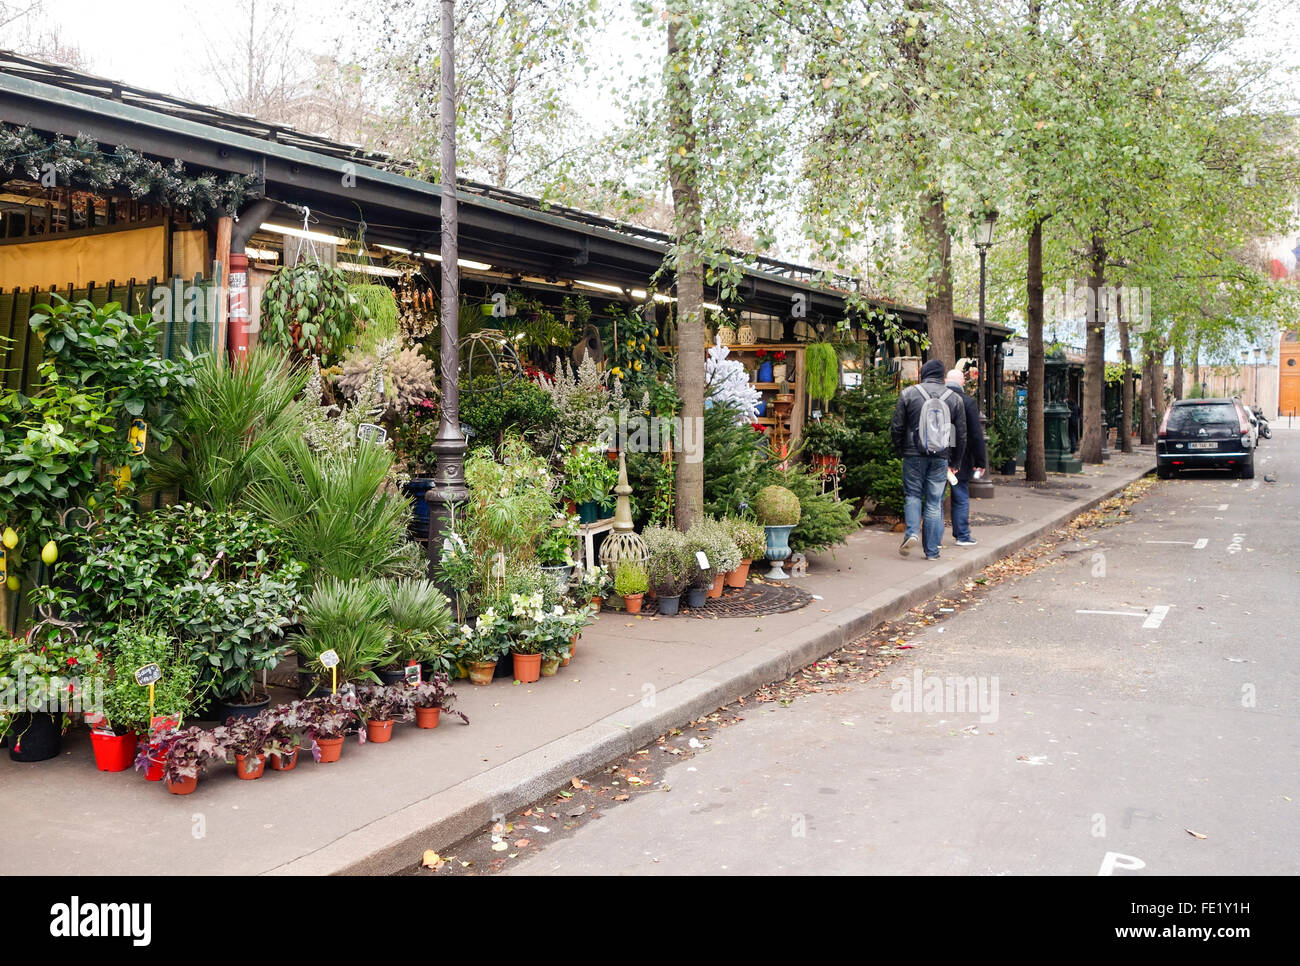 Flowers and birds Market on Place Lepine,  Île de la Cité, Paris, France. - Stock Image